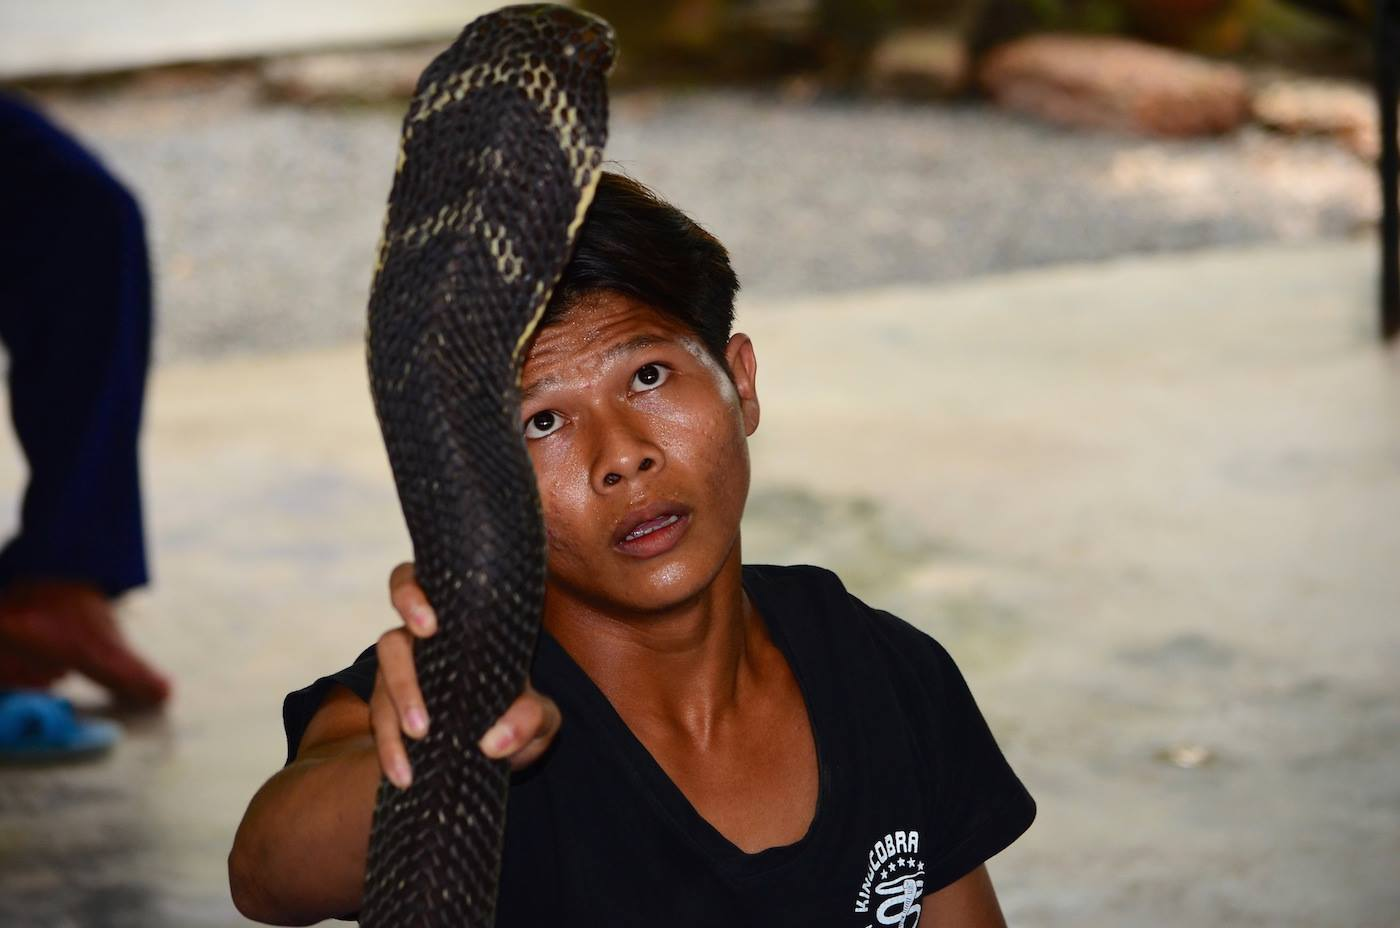 Ole from Burma handles a large king cobra in a show in Thailand.